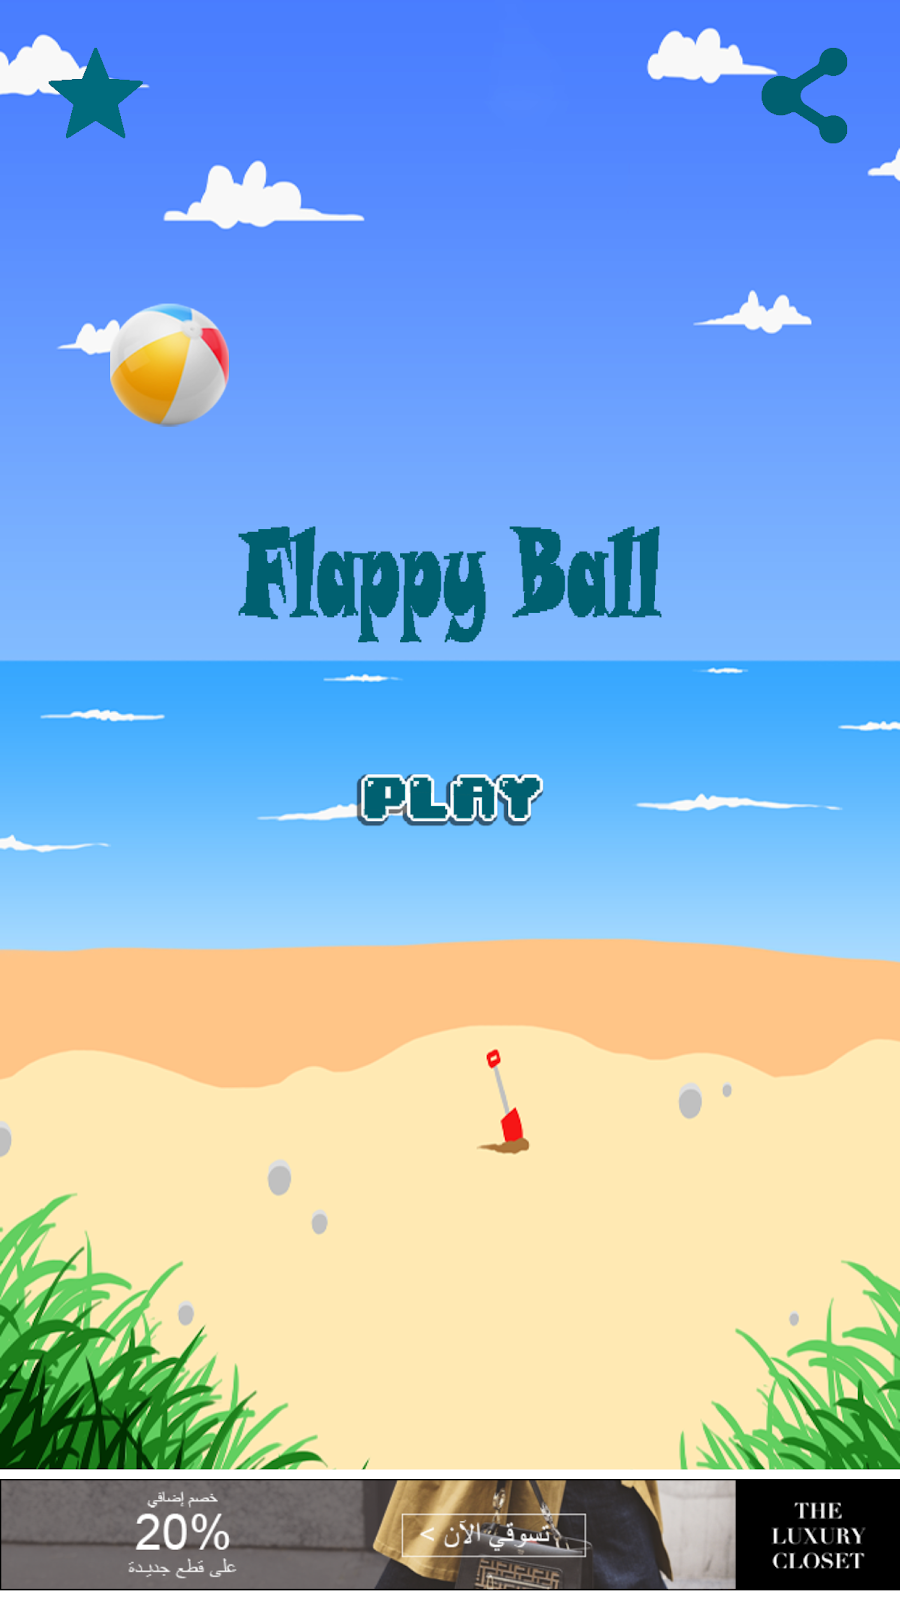 IKeyword - Flappy Beach Ball | iKeyword Asia - Share Source Code